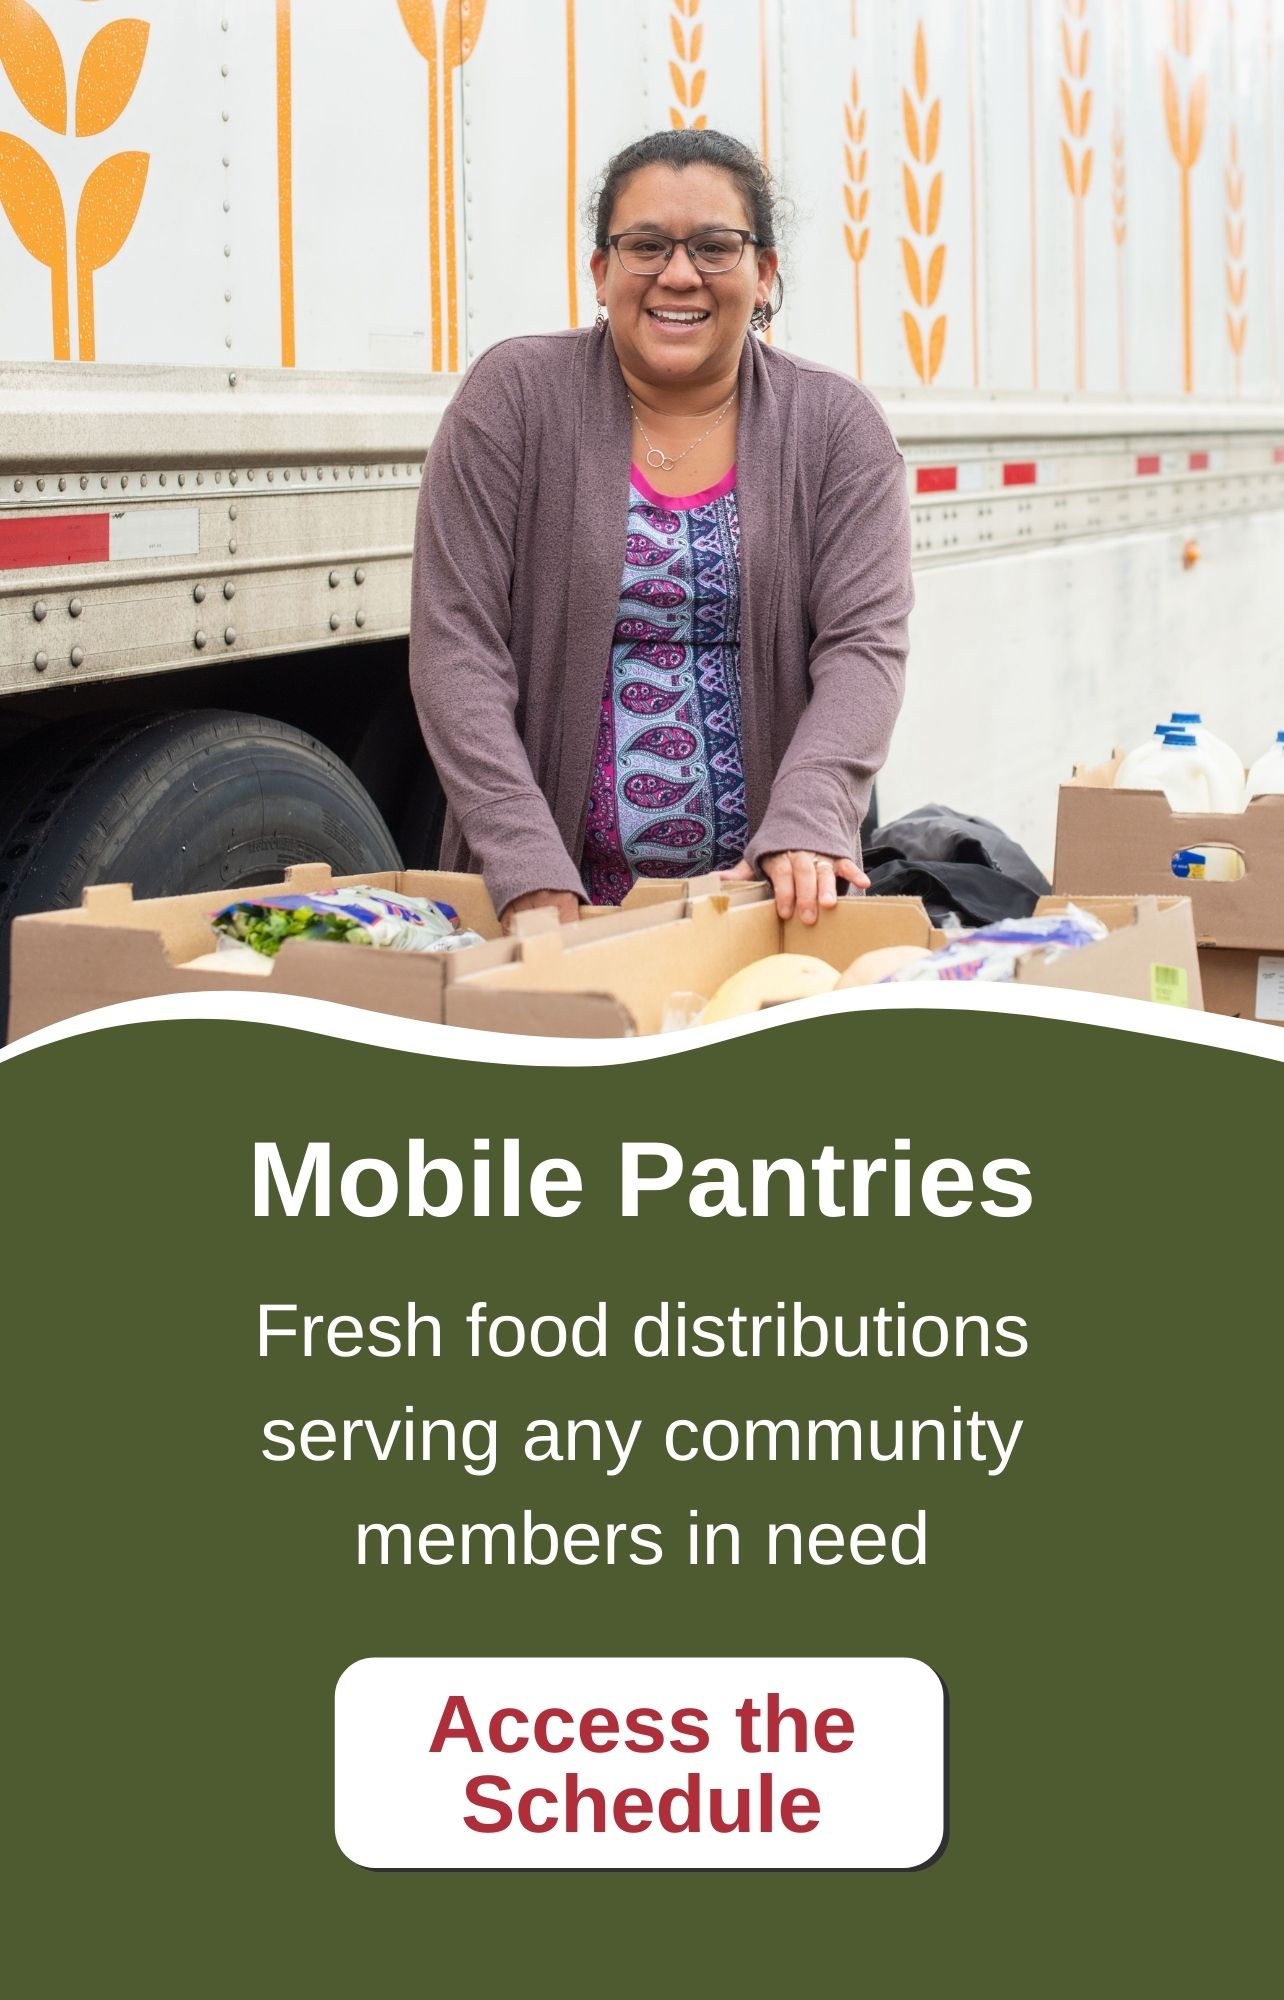 Mobile Food Pantries. Bringing fresh food to communities in need. Access the schedule.